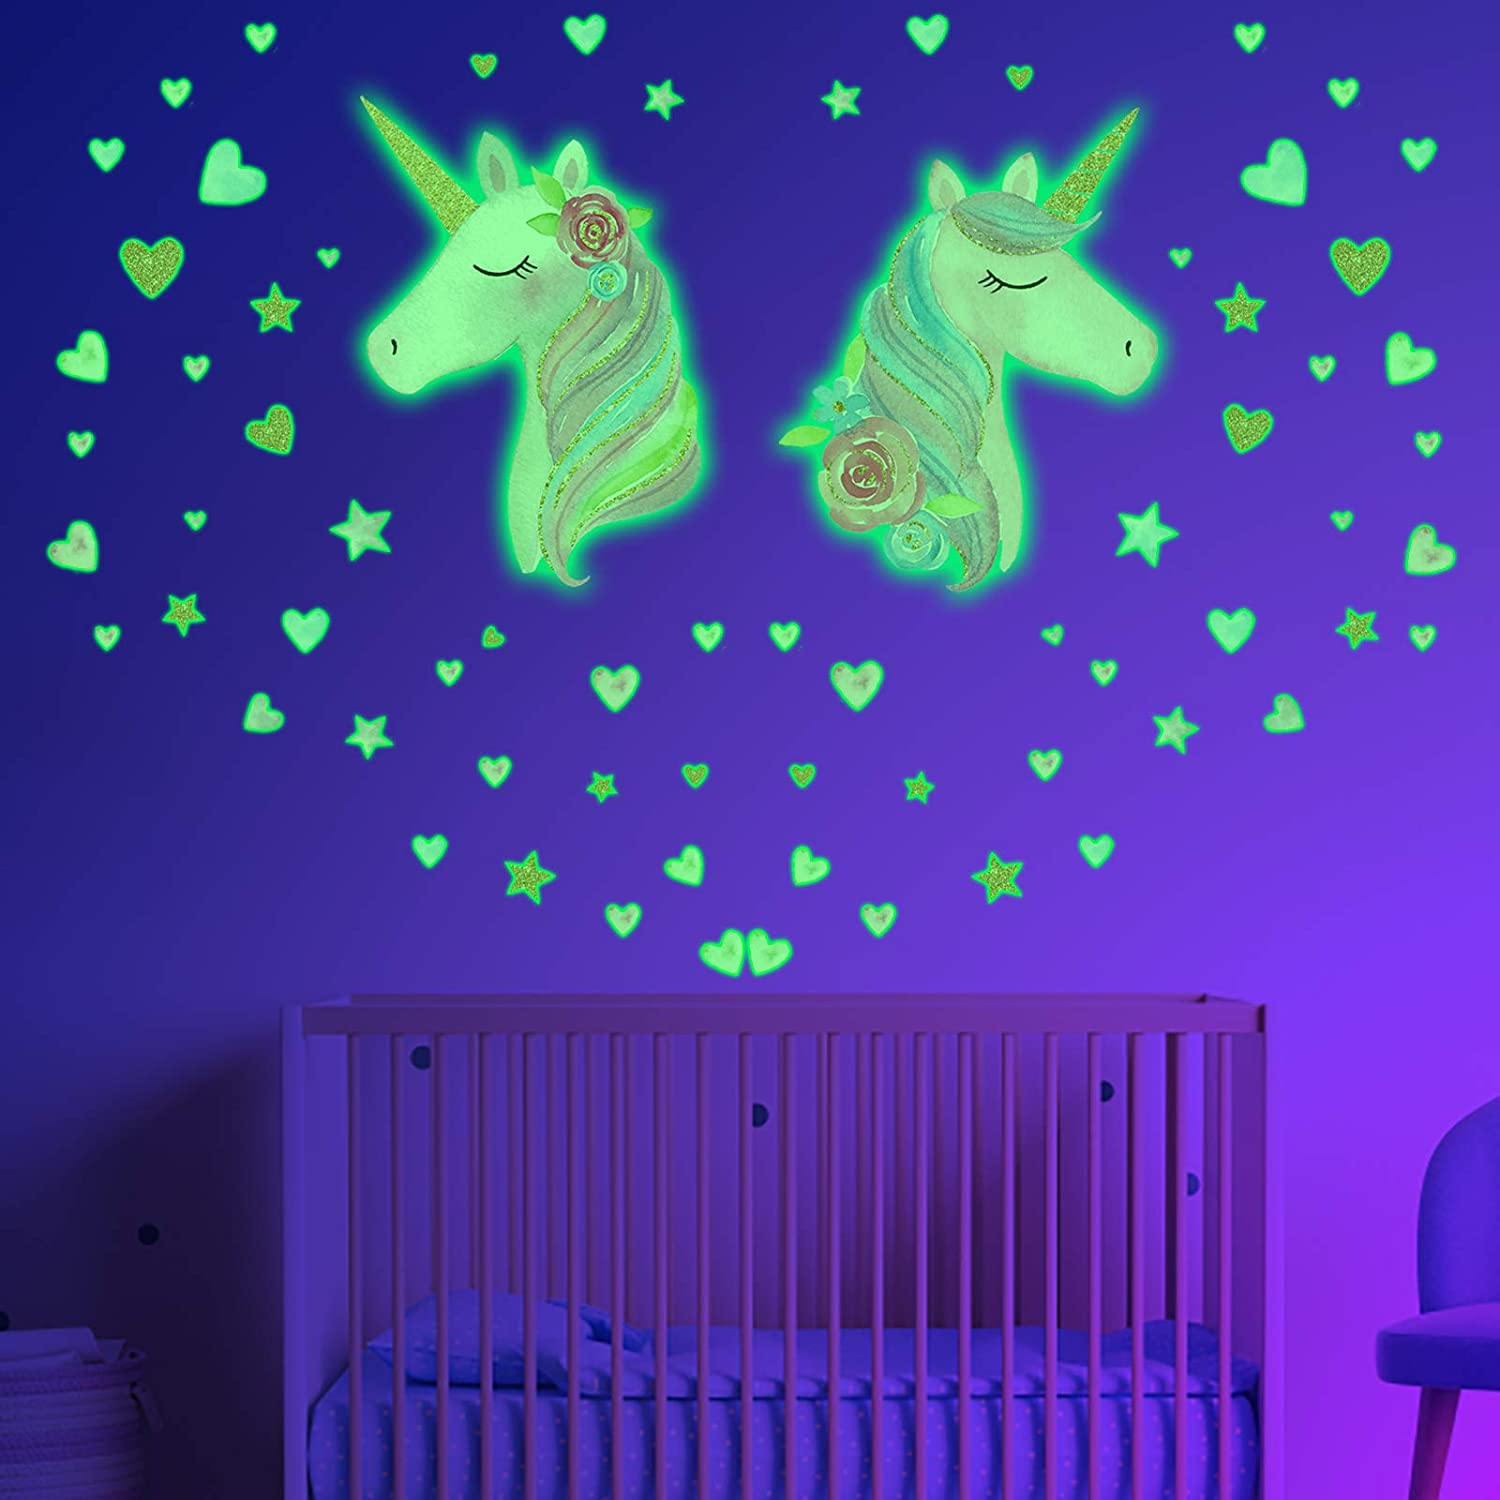 Glow in The Dark Stars for Ceiling, 2 Sheets Unicorn Wall Decal for Girls Bedroom, Unicorn Room Decor for Girls Bedroom,Unicorn Wall Stickers for Kids